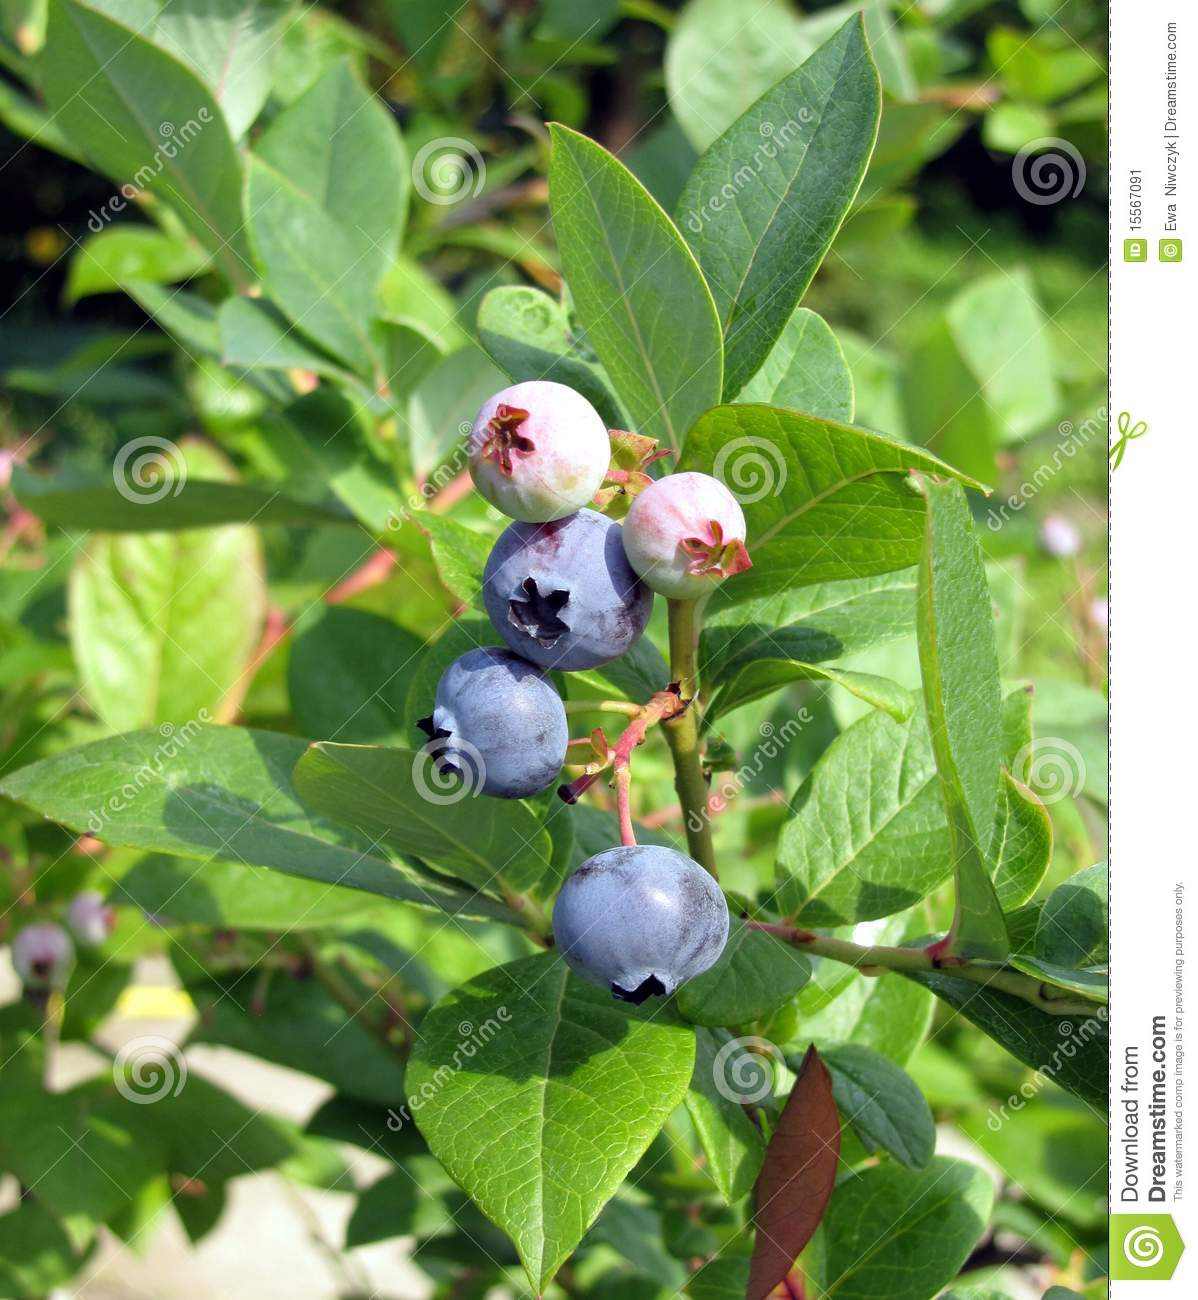 how to grow huckleberries from cuttings